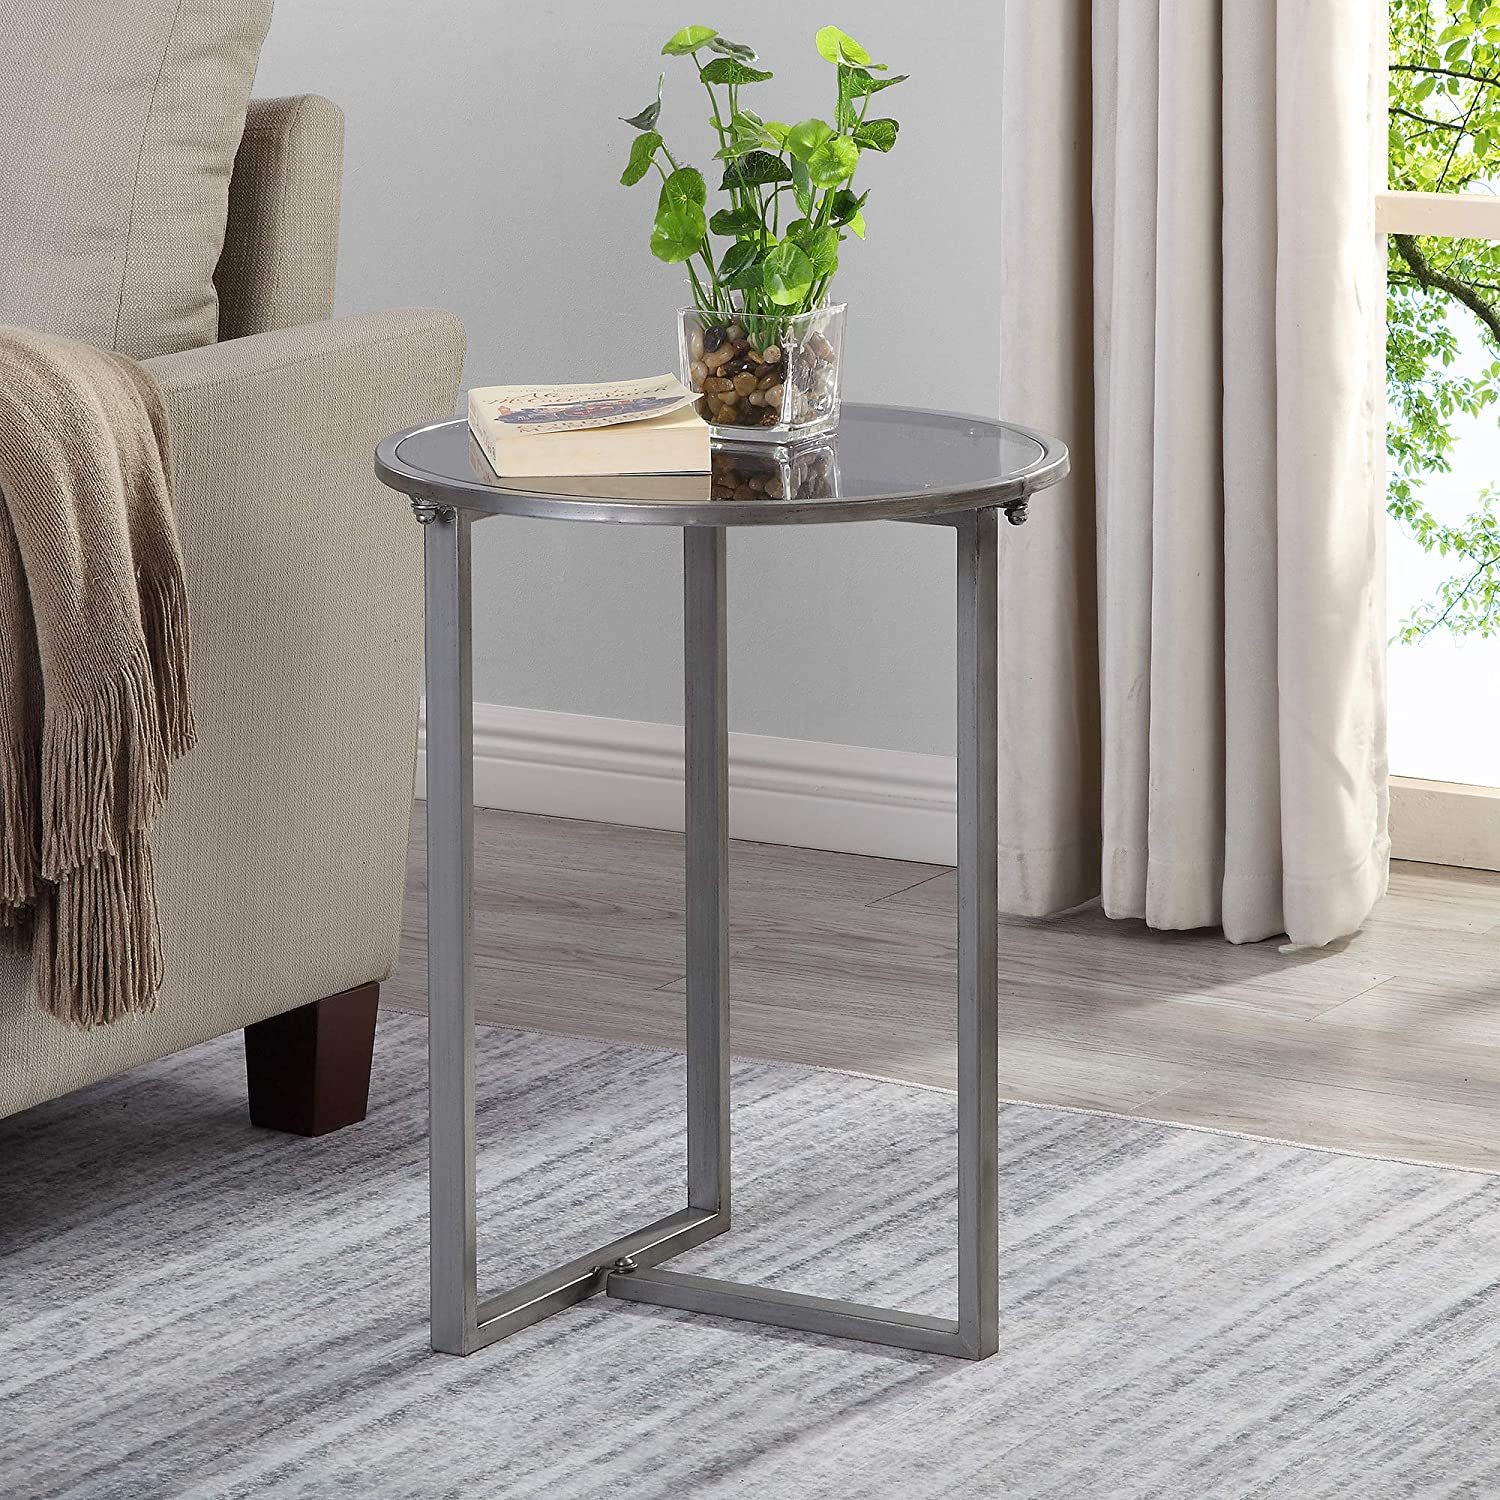 - Amazon.com: FirsTime & Co. Hayden Industrial Accent Table, 21.5